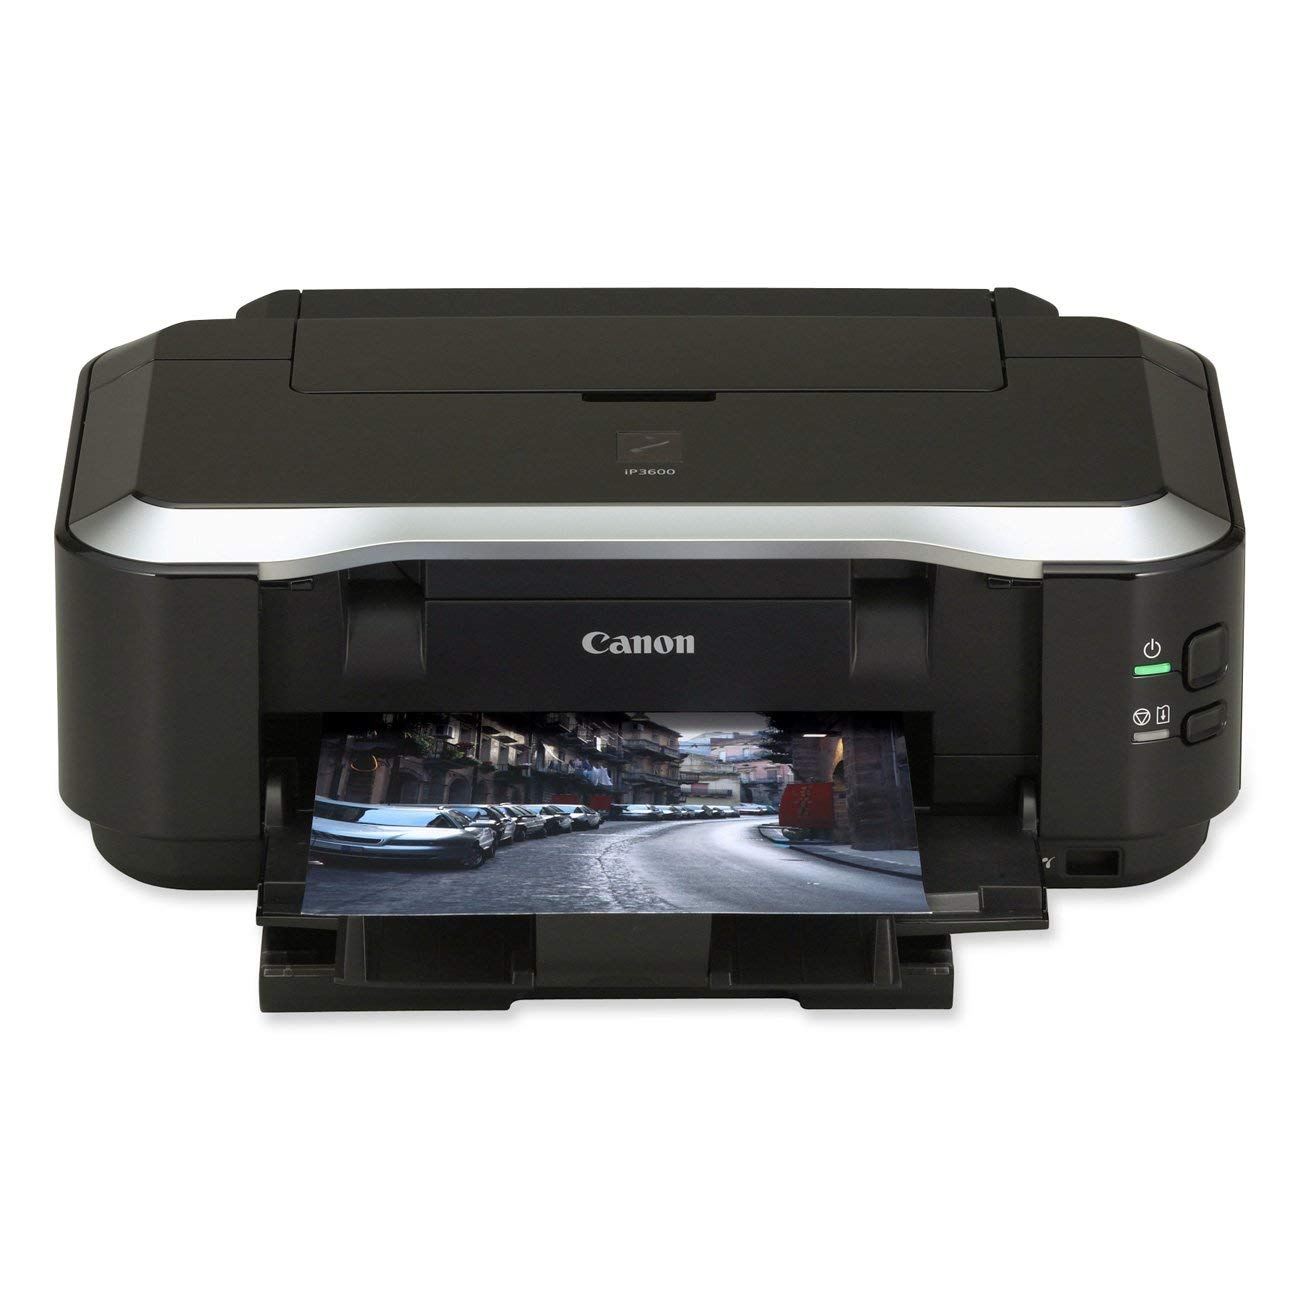 CANON PIXMA IP3680 IP3600 PRINTER DRIVERS FOR WINDOWS MAC